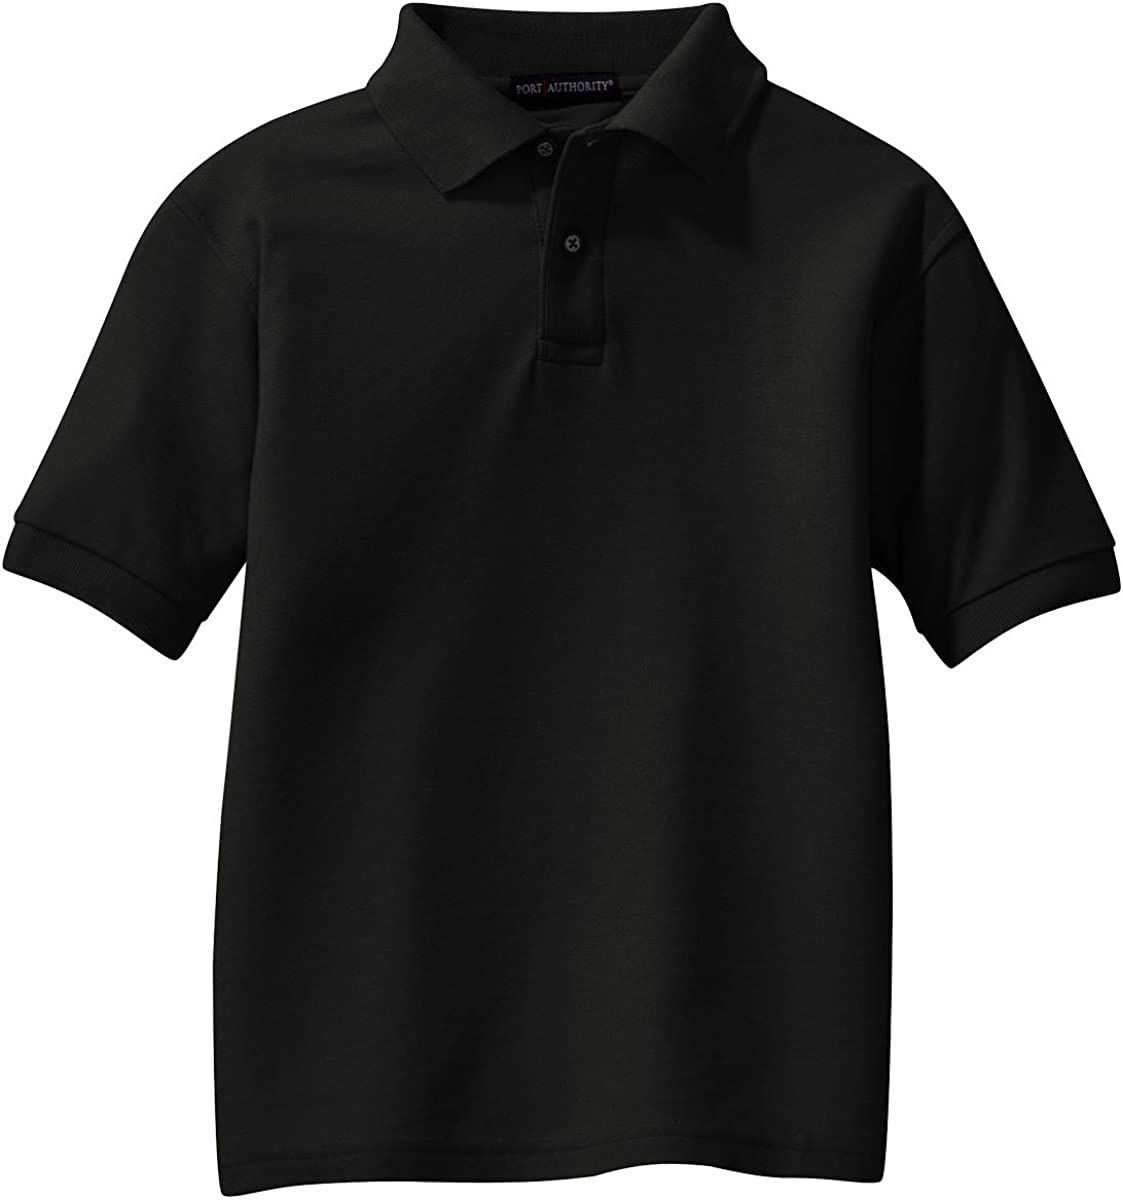 Port Authority Youth Silk Touch Polo (Black)